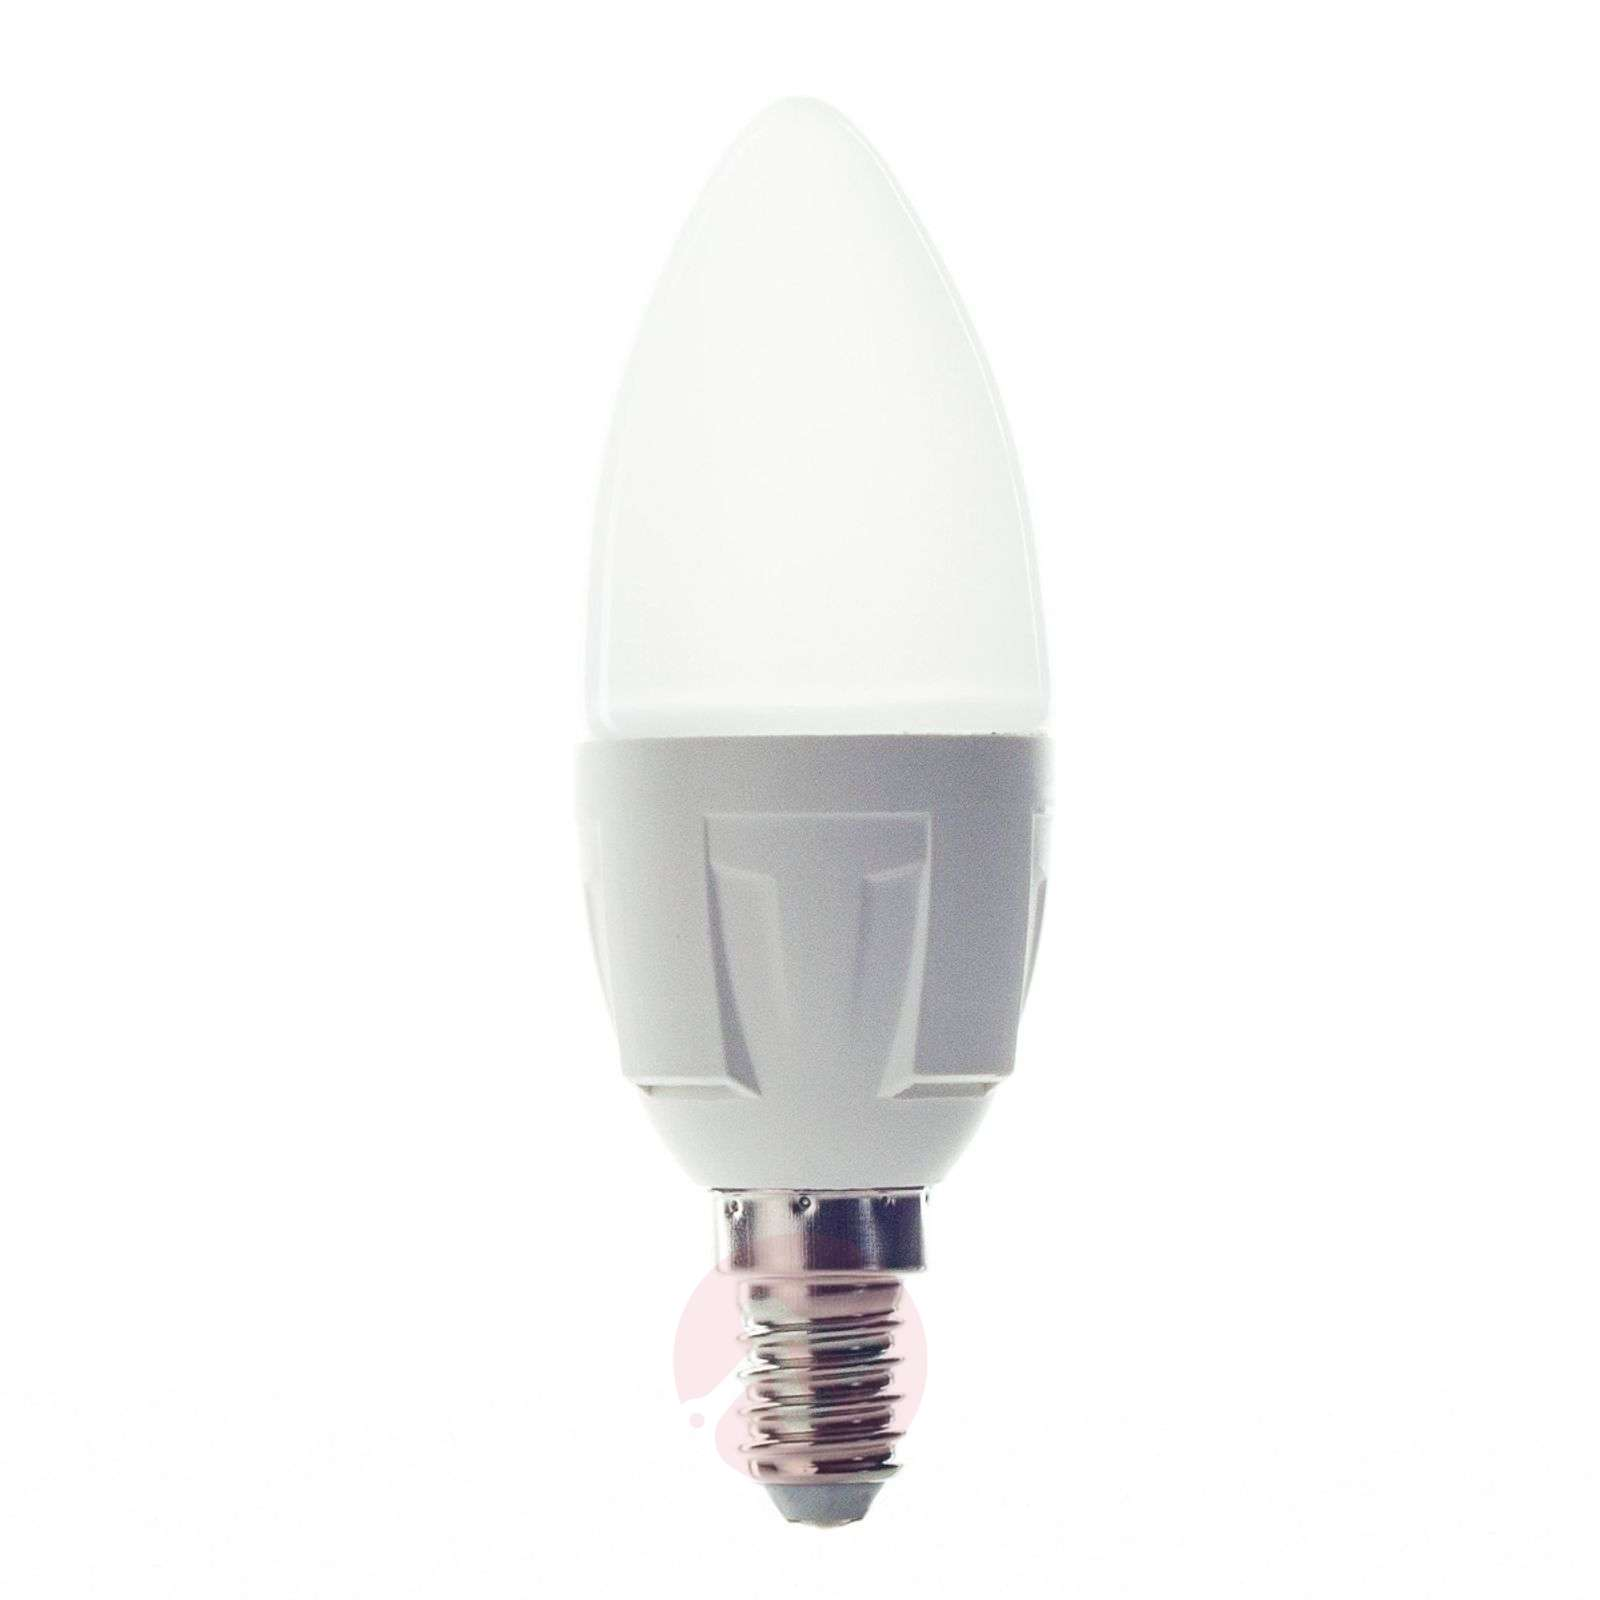 Ampoule bougie LED E14 6W 830 blanc chaud-9993004-02